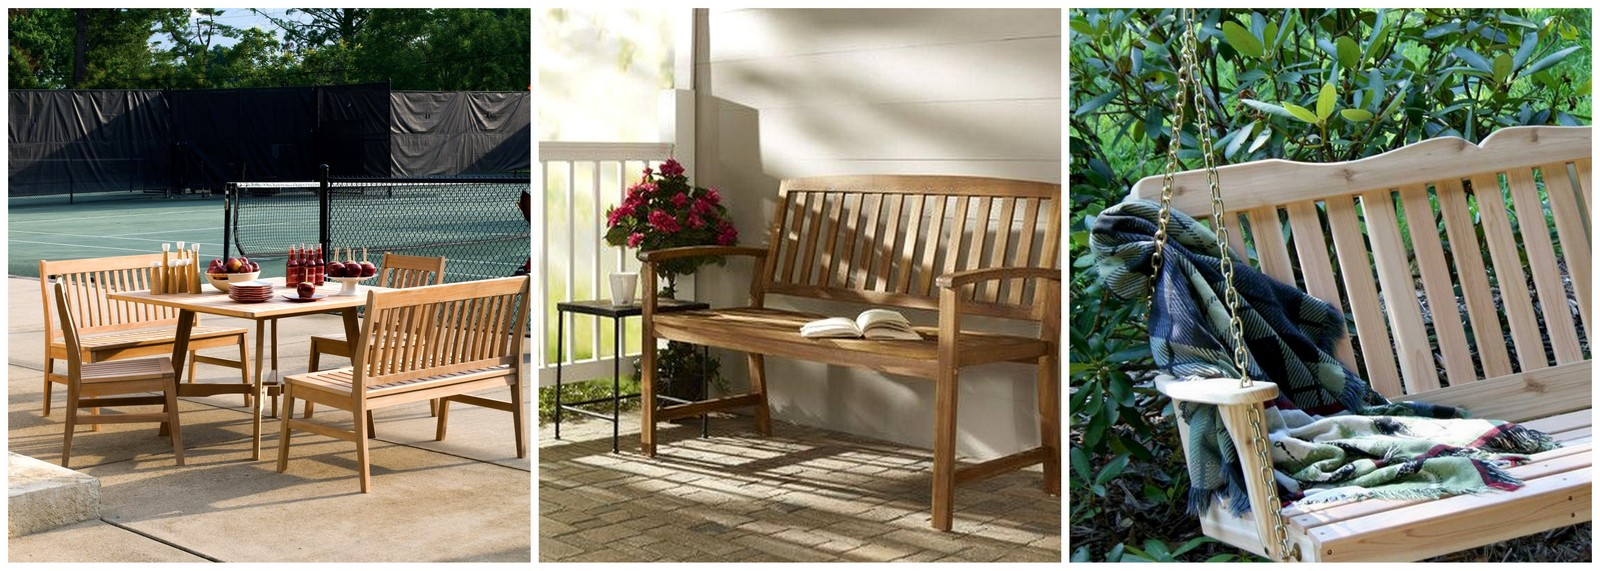 Terrific 11 Best Garden Benches Of 2019 Reviewed Homesthetics Short Links Chair Design For Home Short Linksinfo